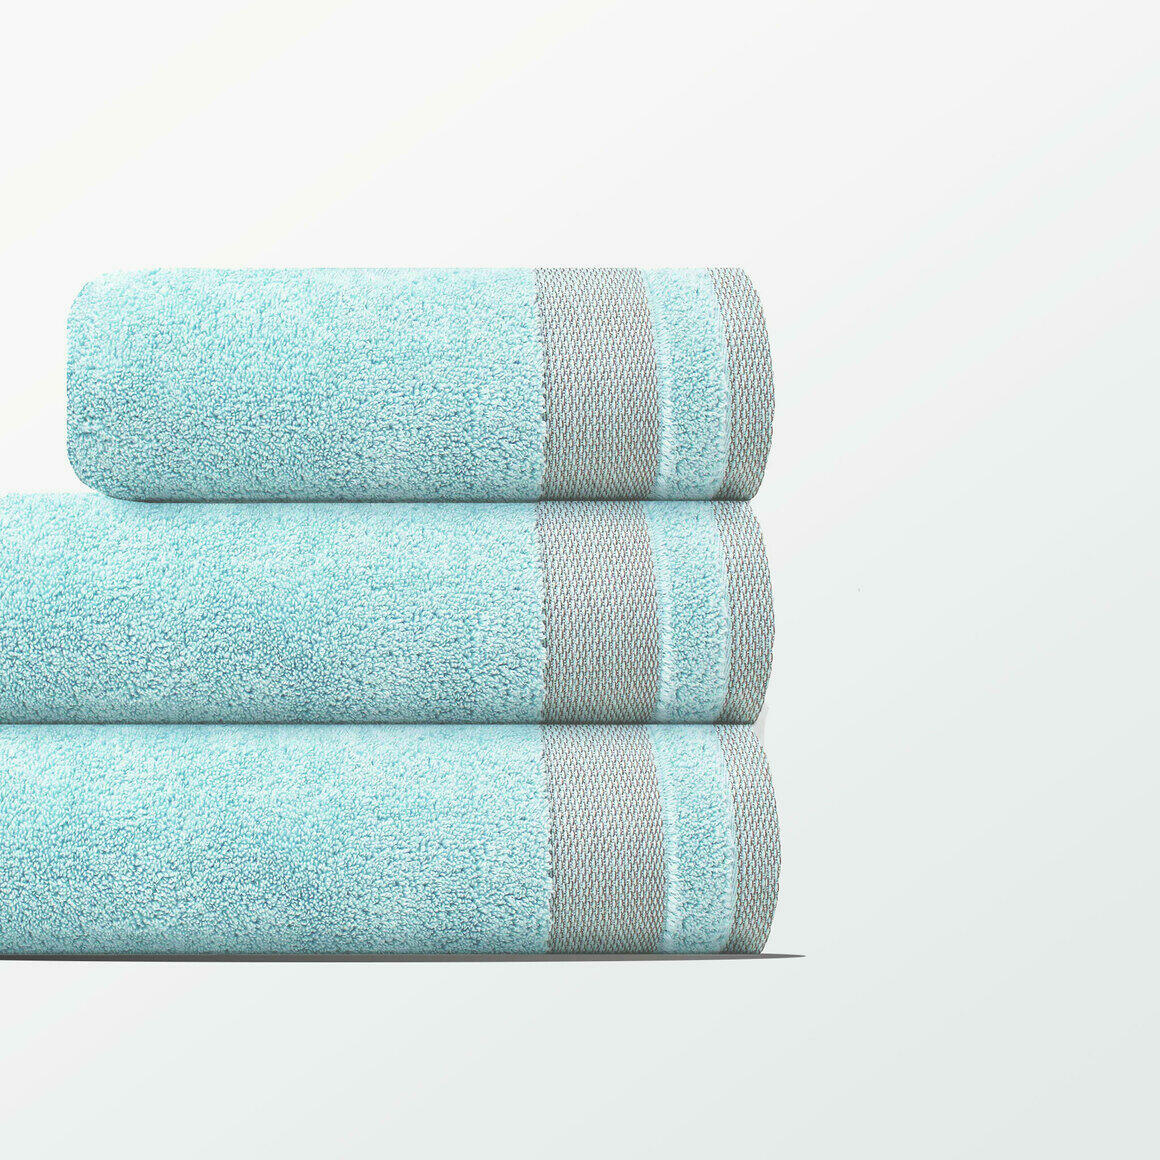 RC SURF Super Soft Towel Collection - Turquoise - Hand Towel   Trada Marketplace